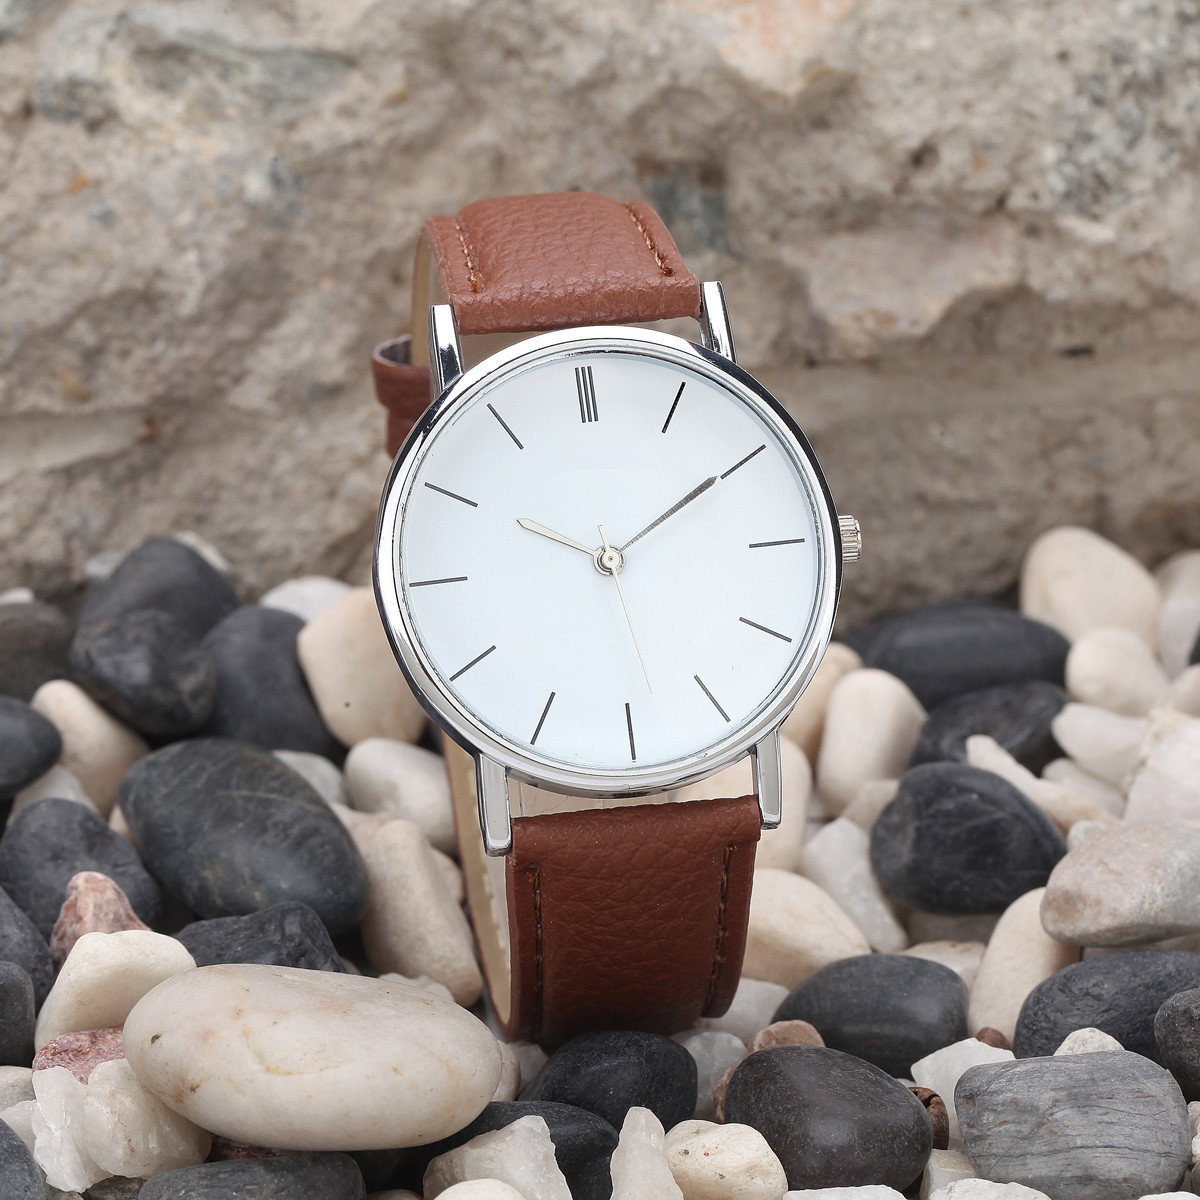 Hot Sale Fabulous 1pc Women watches Retro Design Leather Band simple design Analog Alloy Quartz Wrist watch women relogio #07 hot new fashion quartz watch women gift rainbow design leather band analog alloy quartz wrist watch clock relogio feminino